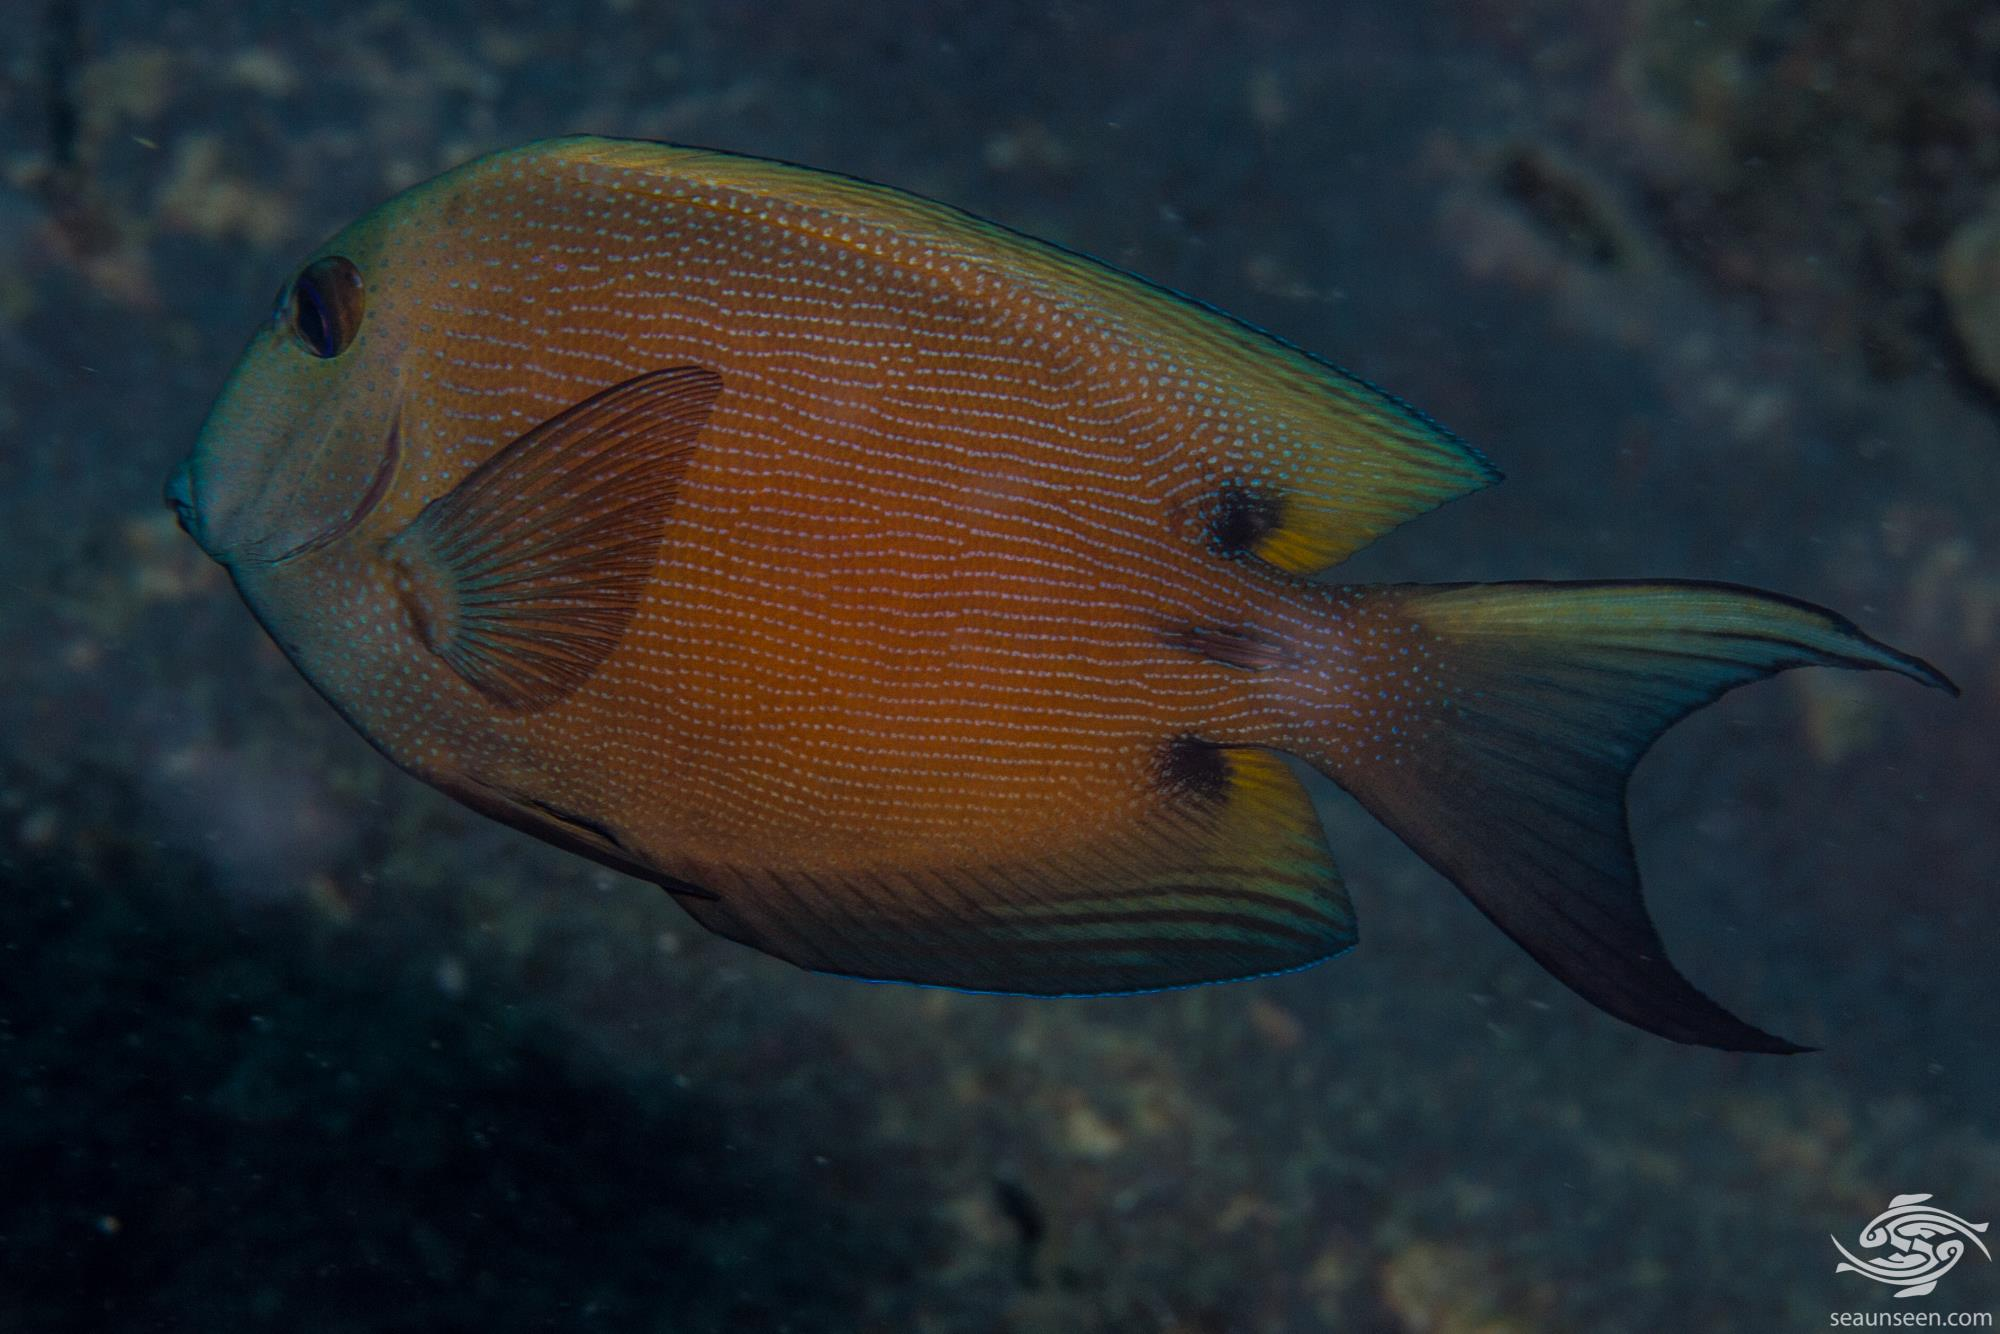 Twospot Bristletooth, Ctenochaetus binotatus also known as the Twospot Surgeonfish